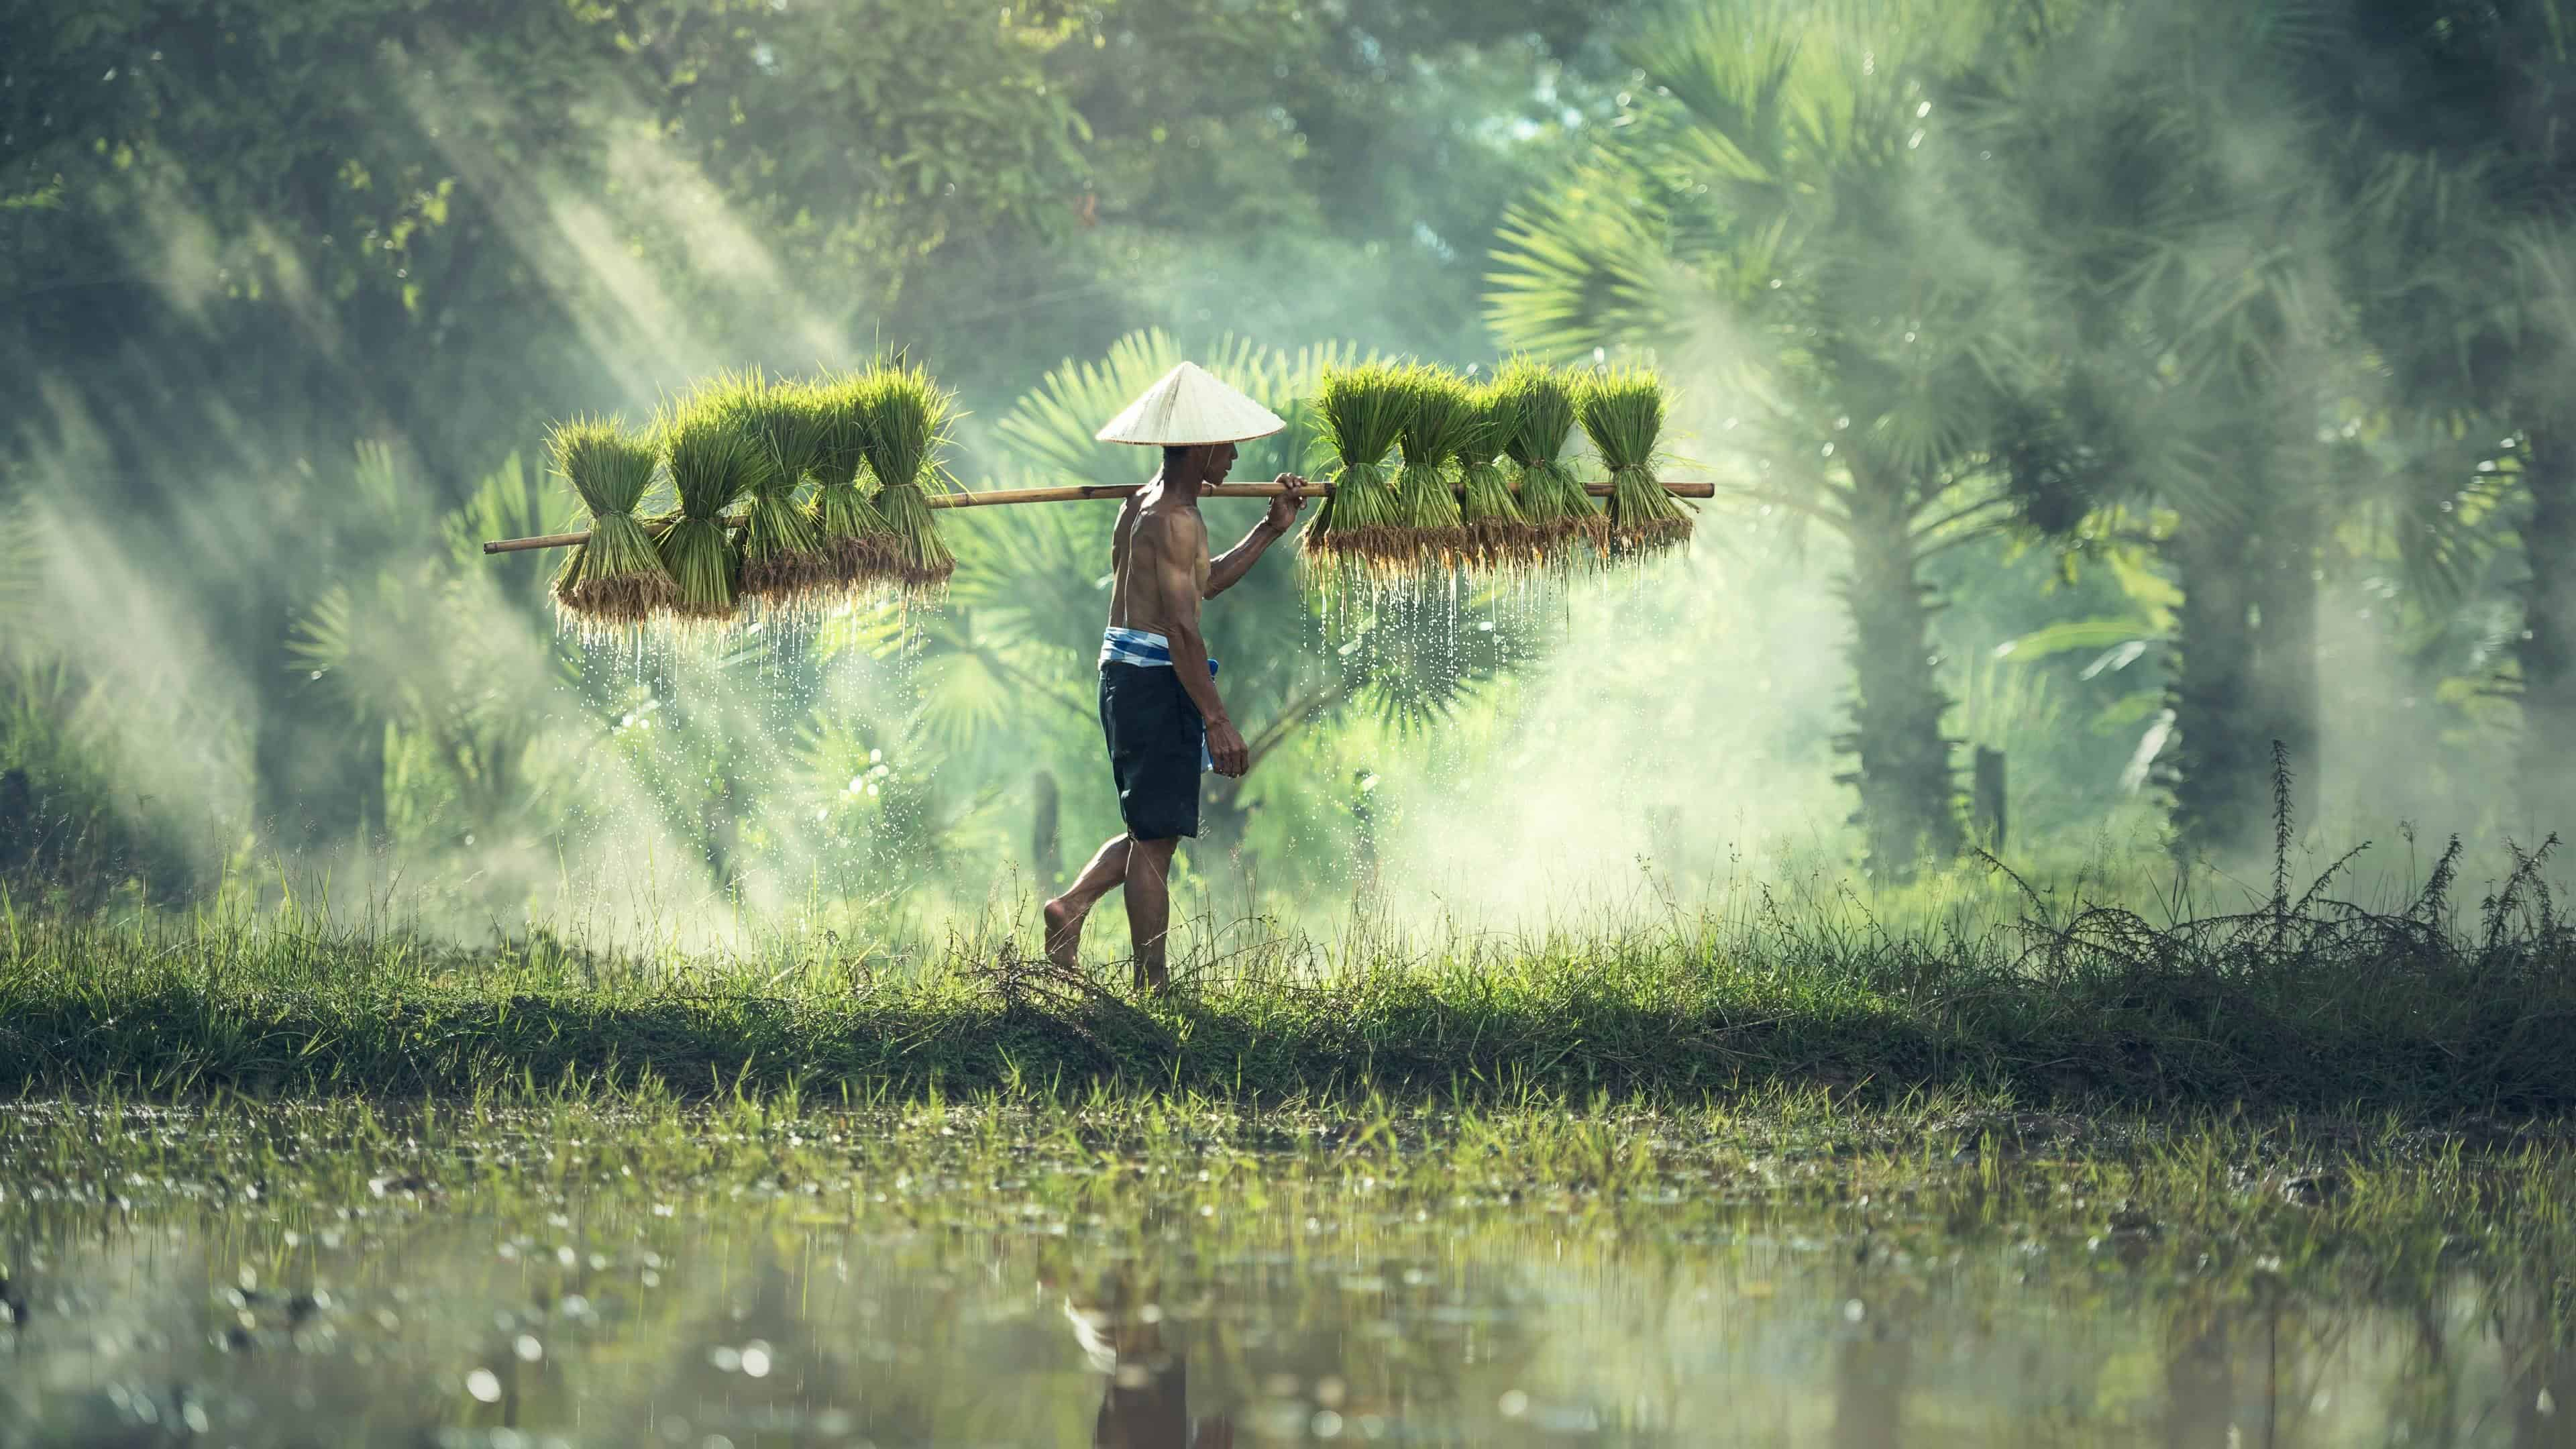 About >> Cambodian Rice Farmer UHD 4K Wallpaper | Pixelz